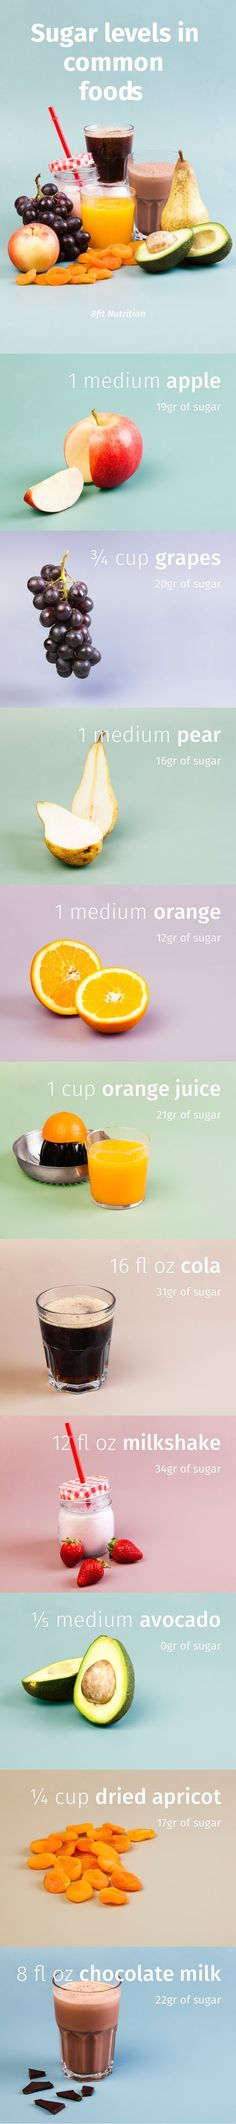 how much sugar in food infographic Bridal Nose Ring, How Much Sugar, Fruit Drinks, Nutrition Tips, Nutritious Meals, Jewelry Trends, Fun Desserts, Healthy Choices, Science